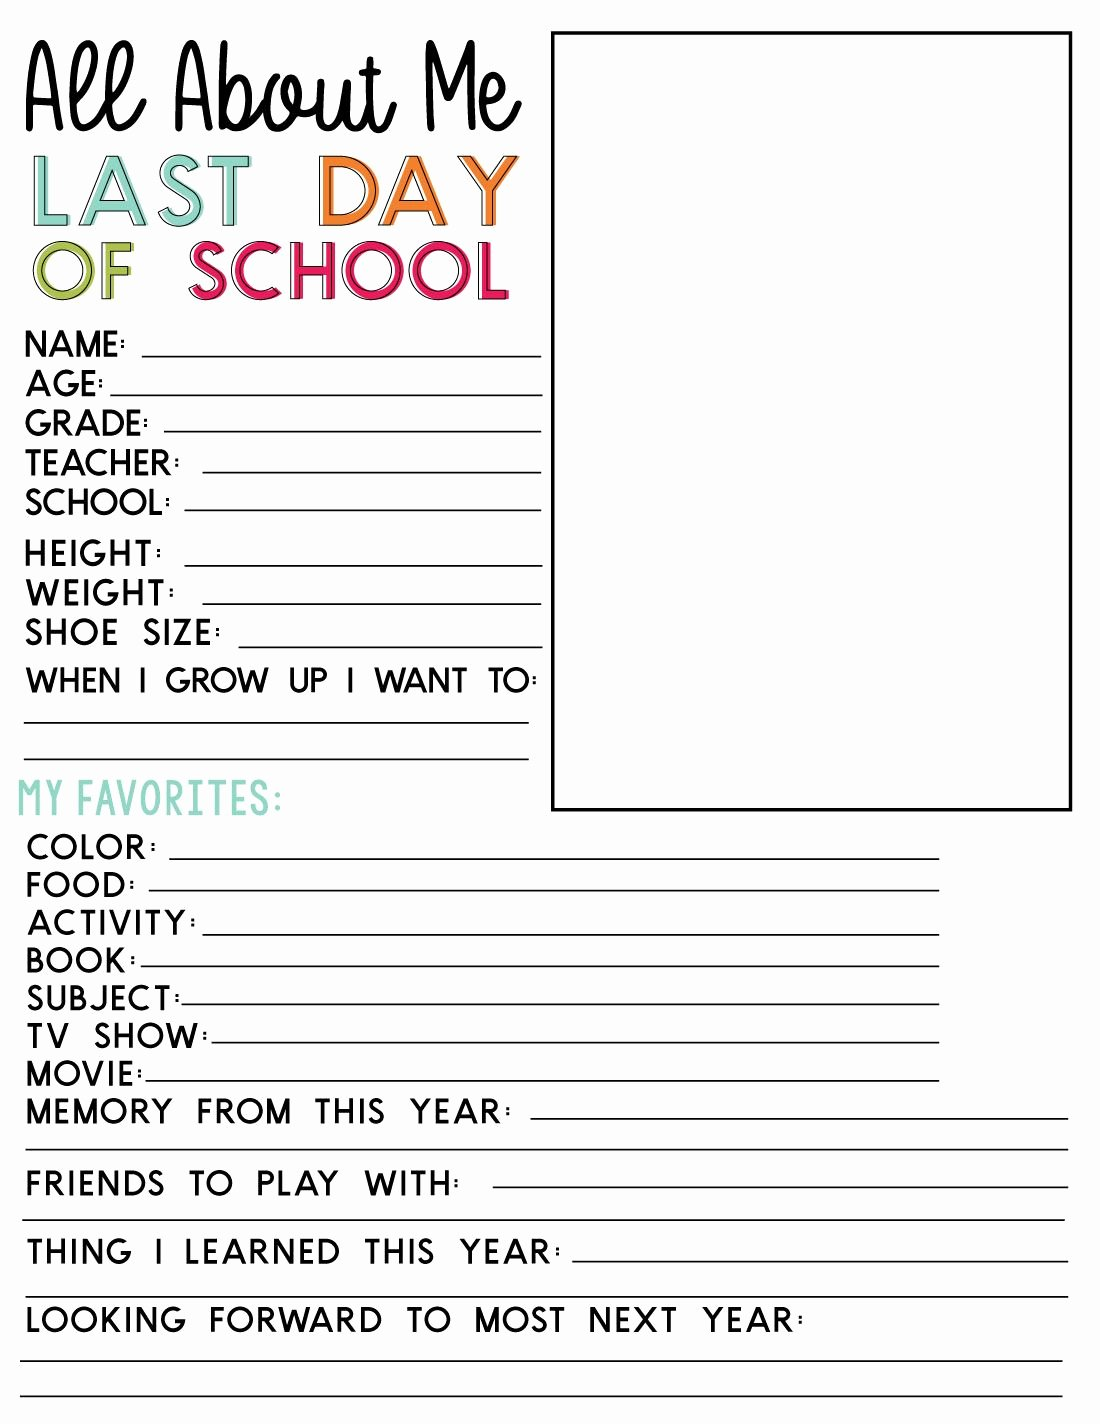 Last Days Of School Worksheets Printable Last Day Of School Printable Fill In Sheet